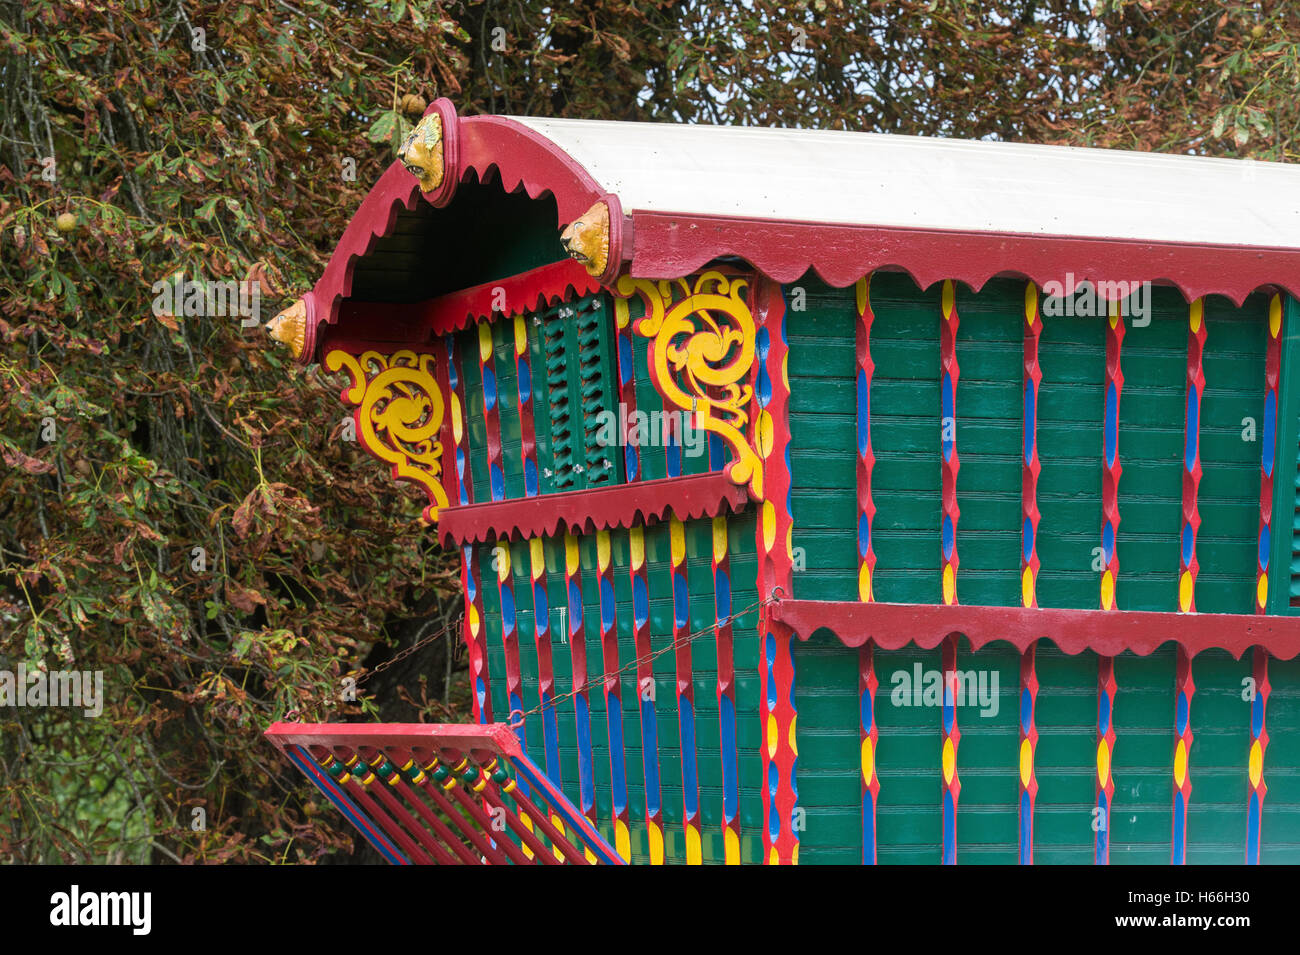 Reading style Gypsy caravan at Weald and Downland open air museum, Singleton, Sussex, England - Stock Image